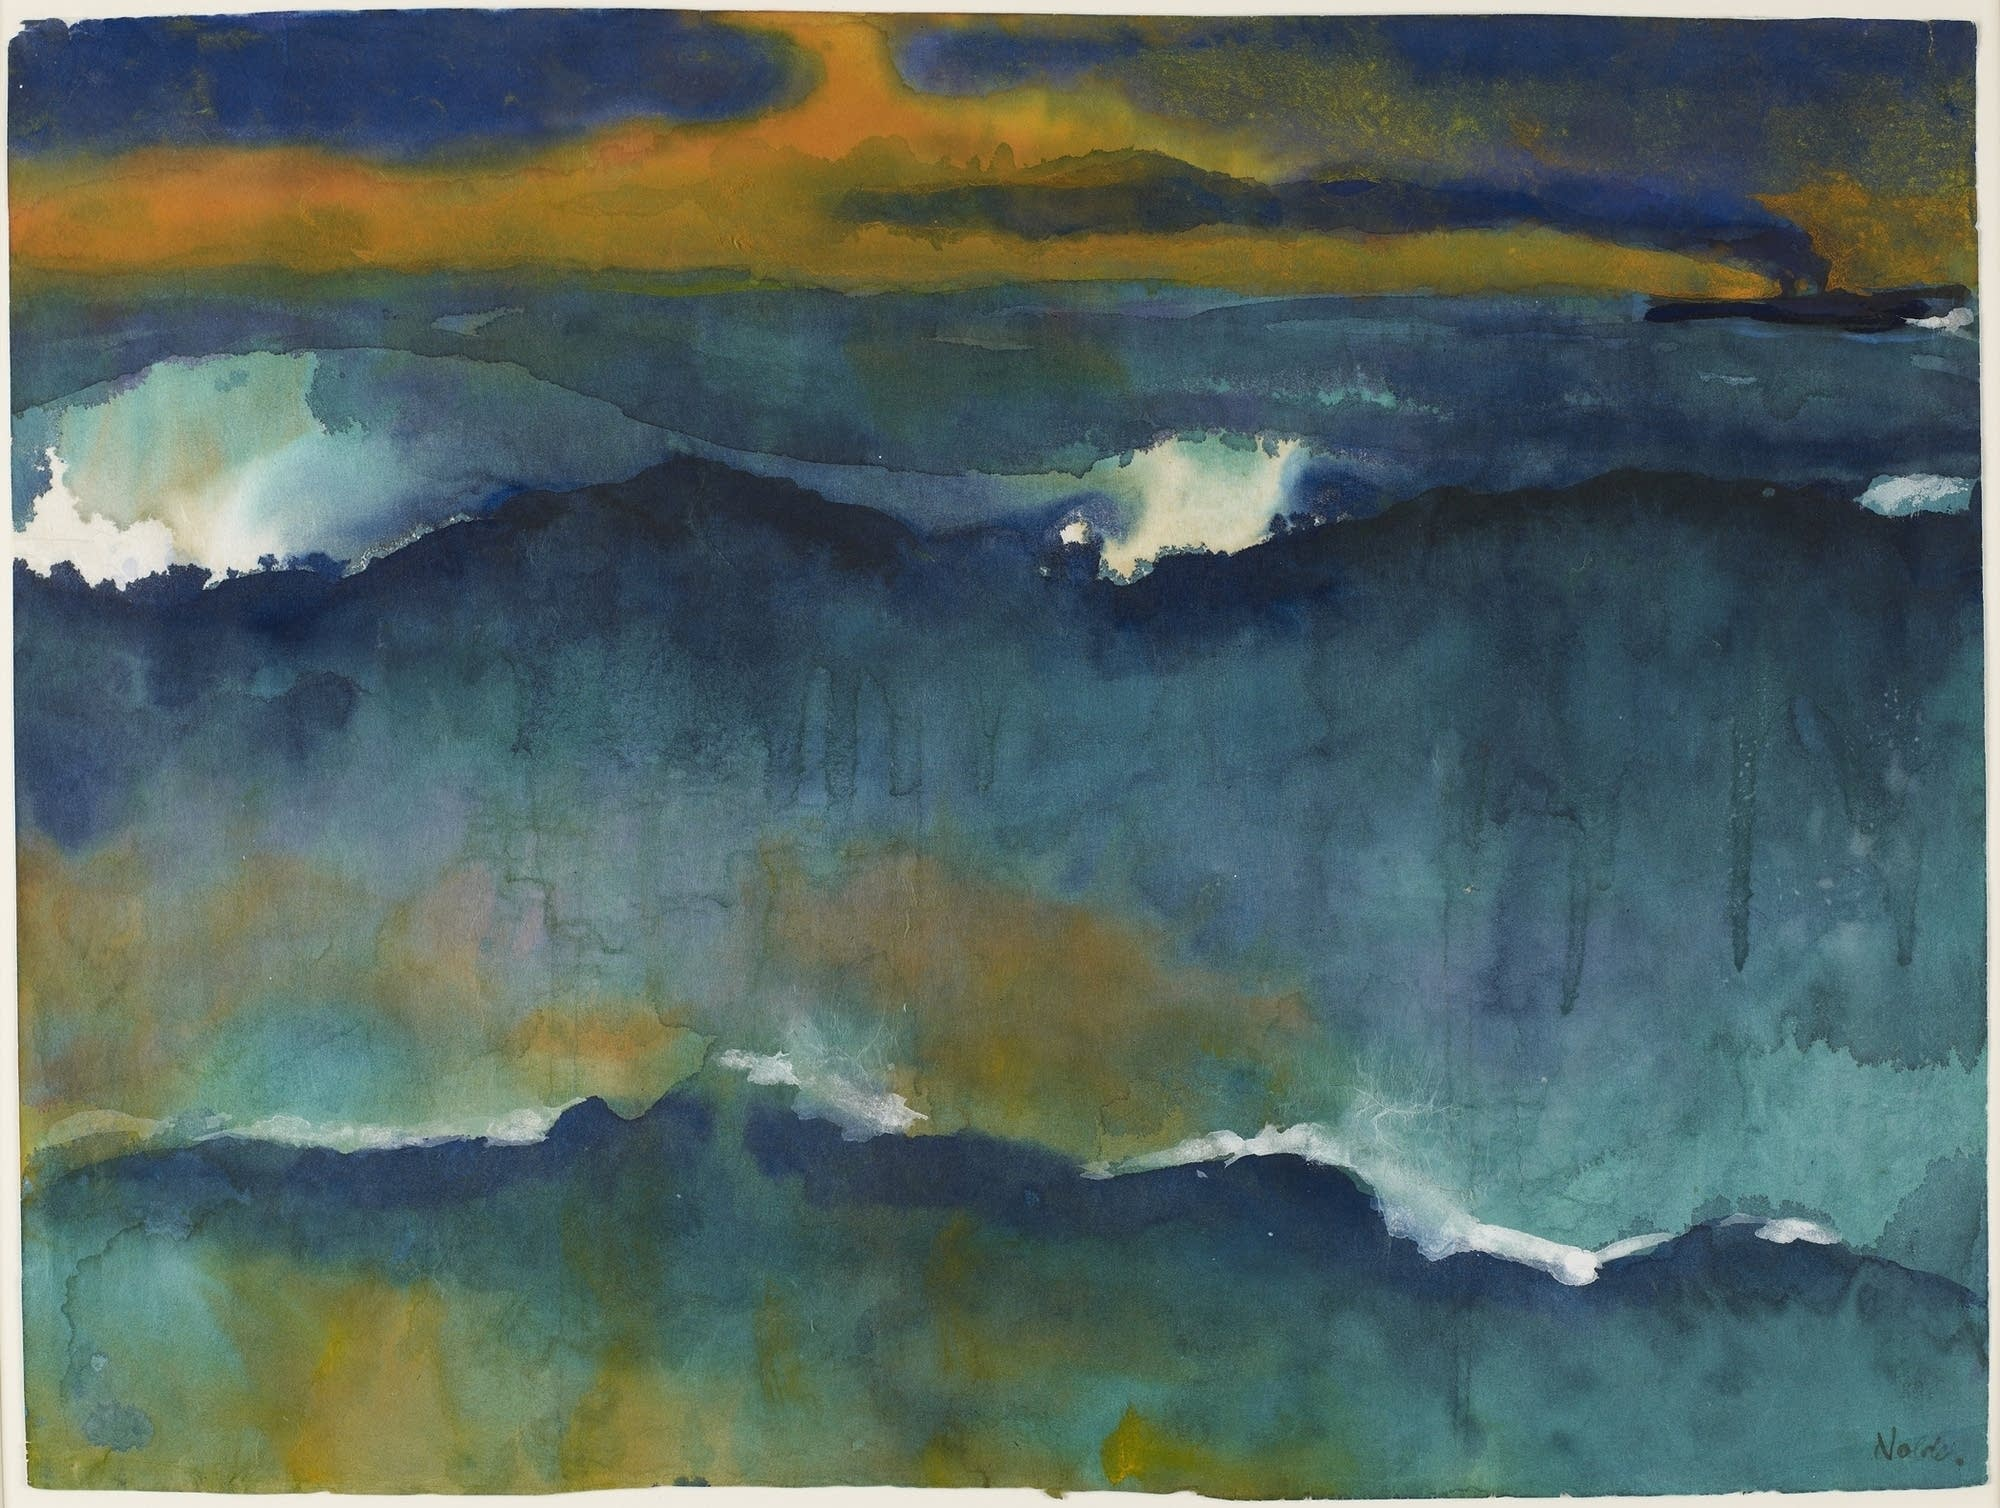 nolde heavy seas at sunset